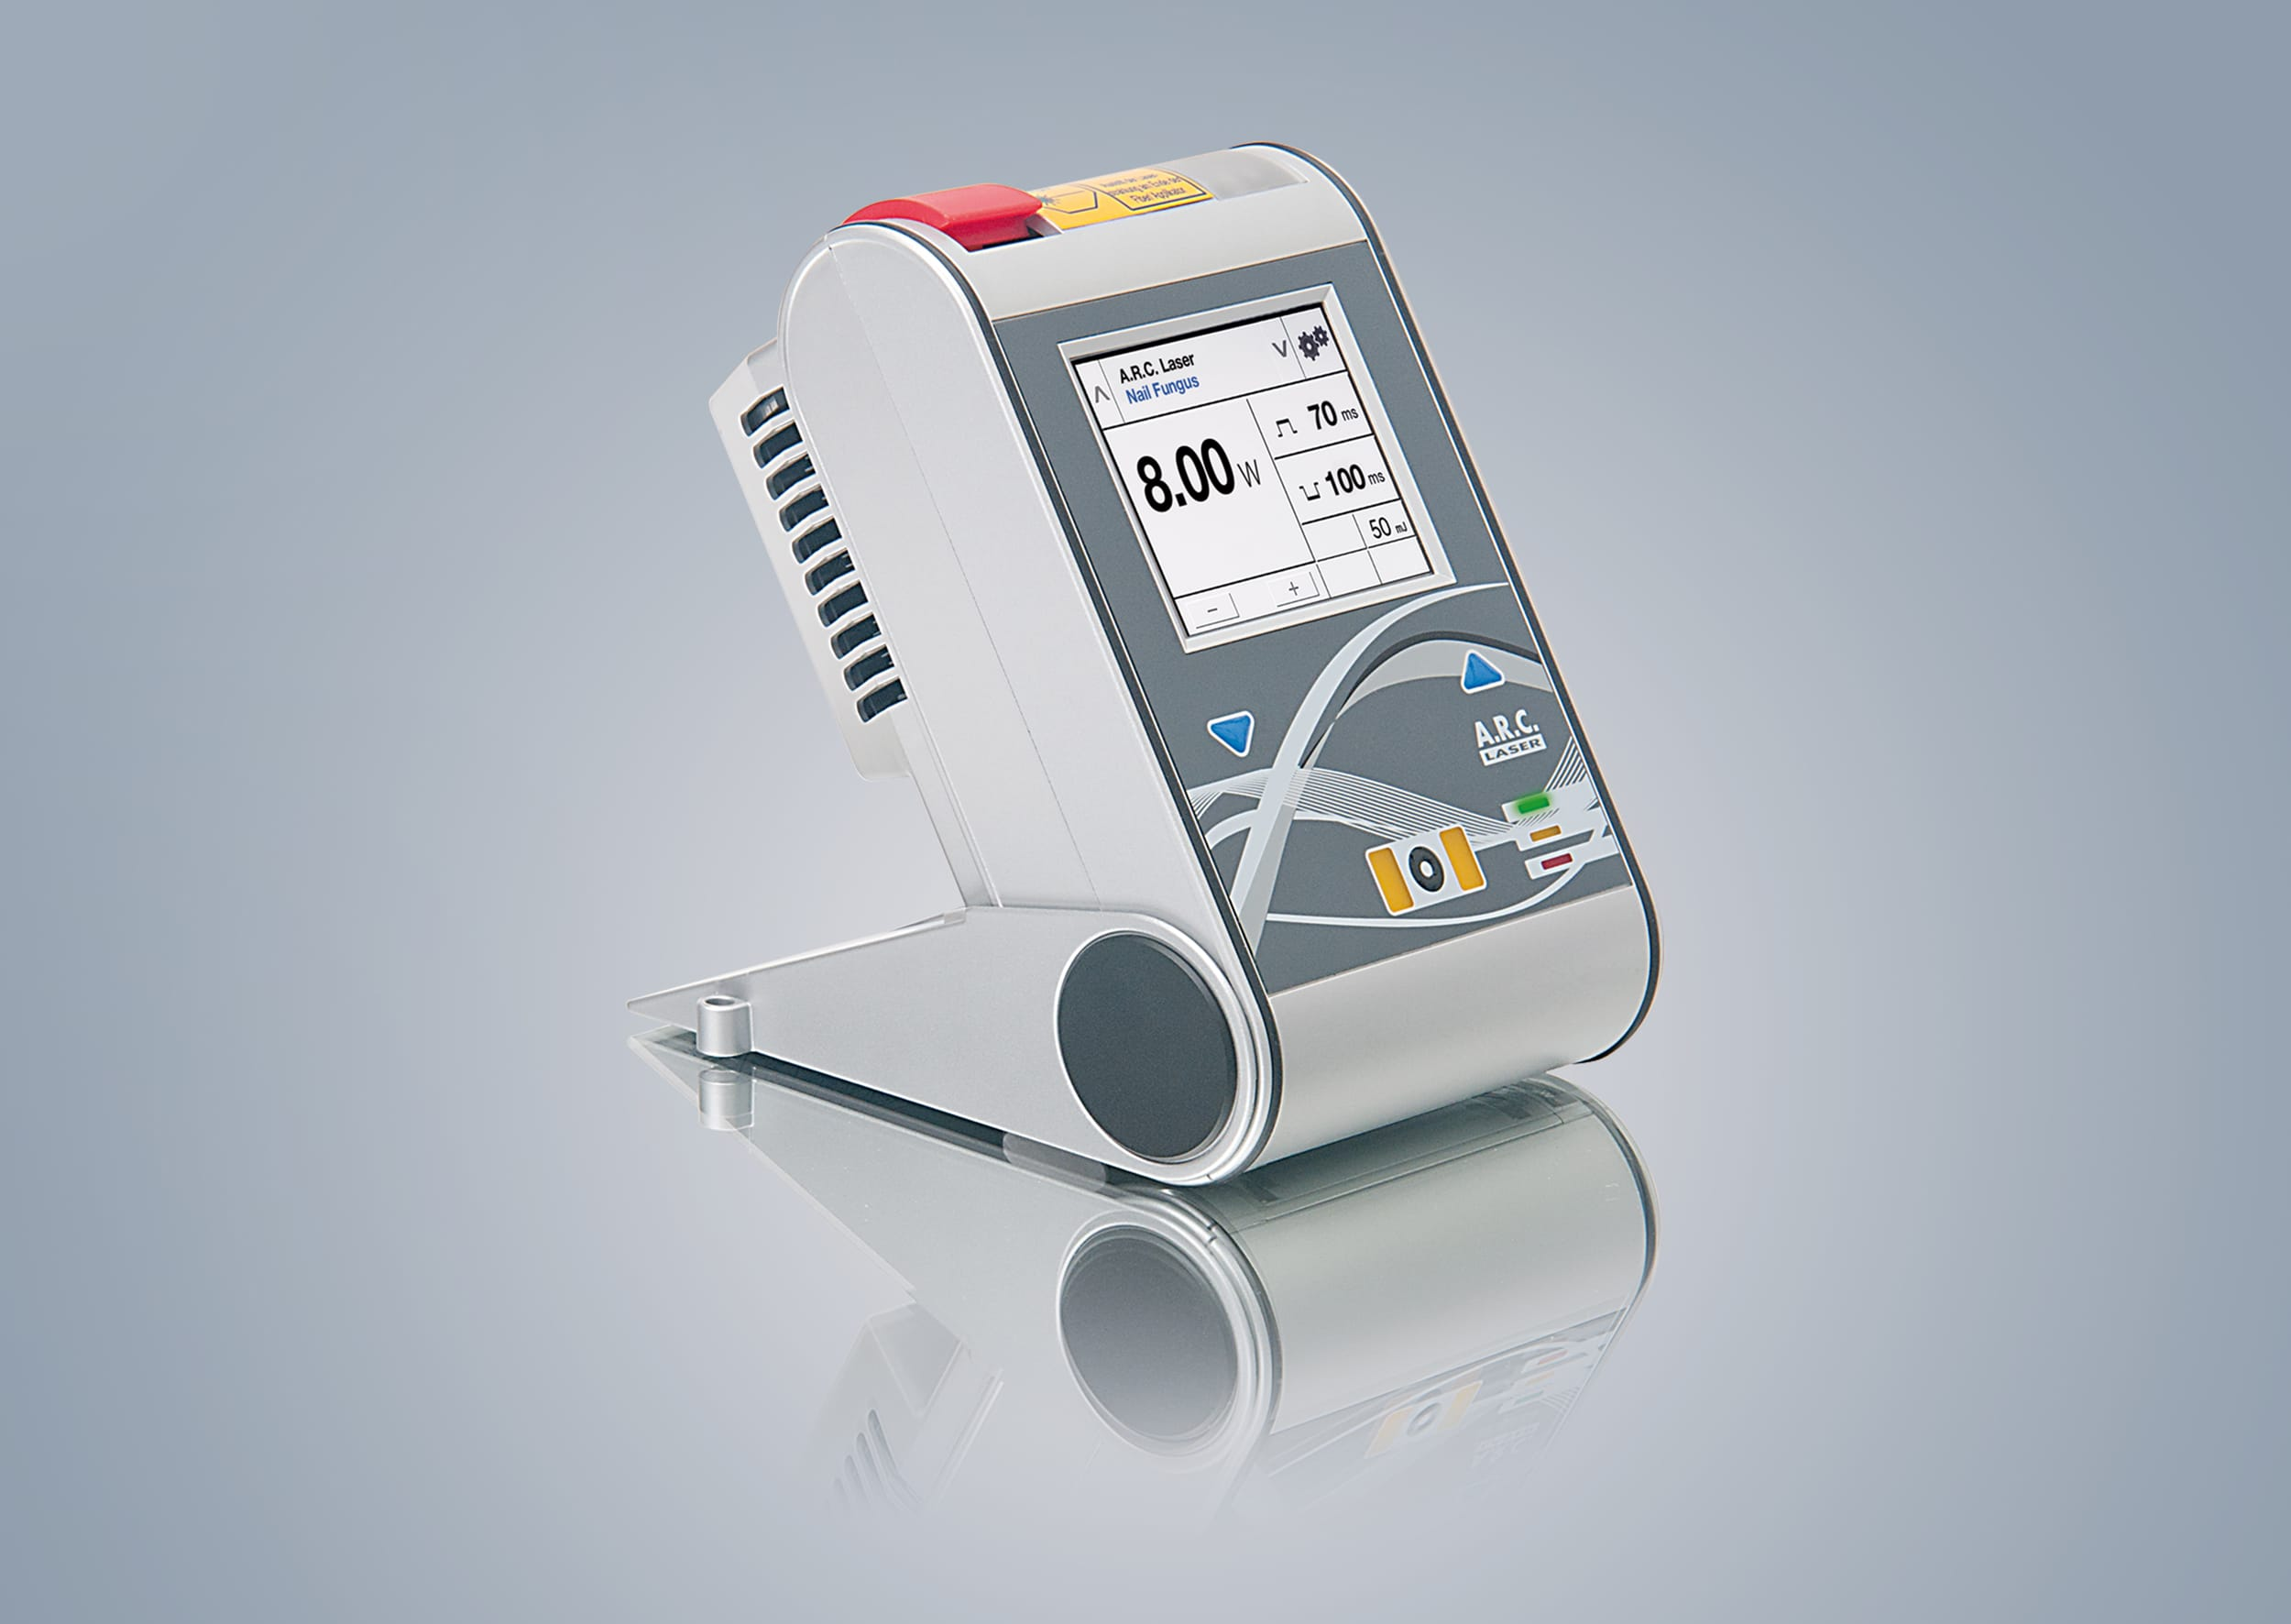 Fox Portable Diode Laser With Up To 12 W A R C Laser